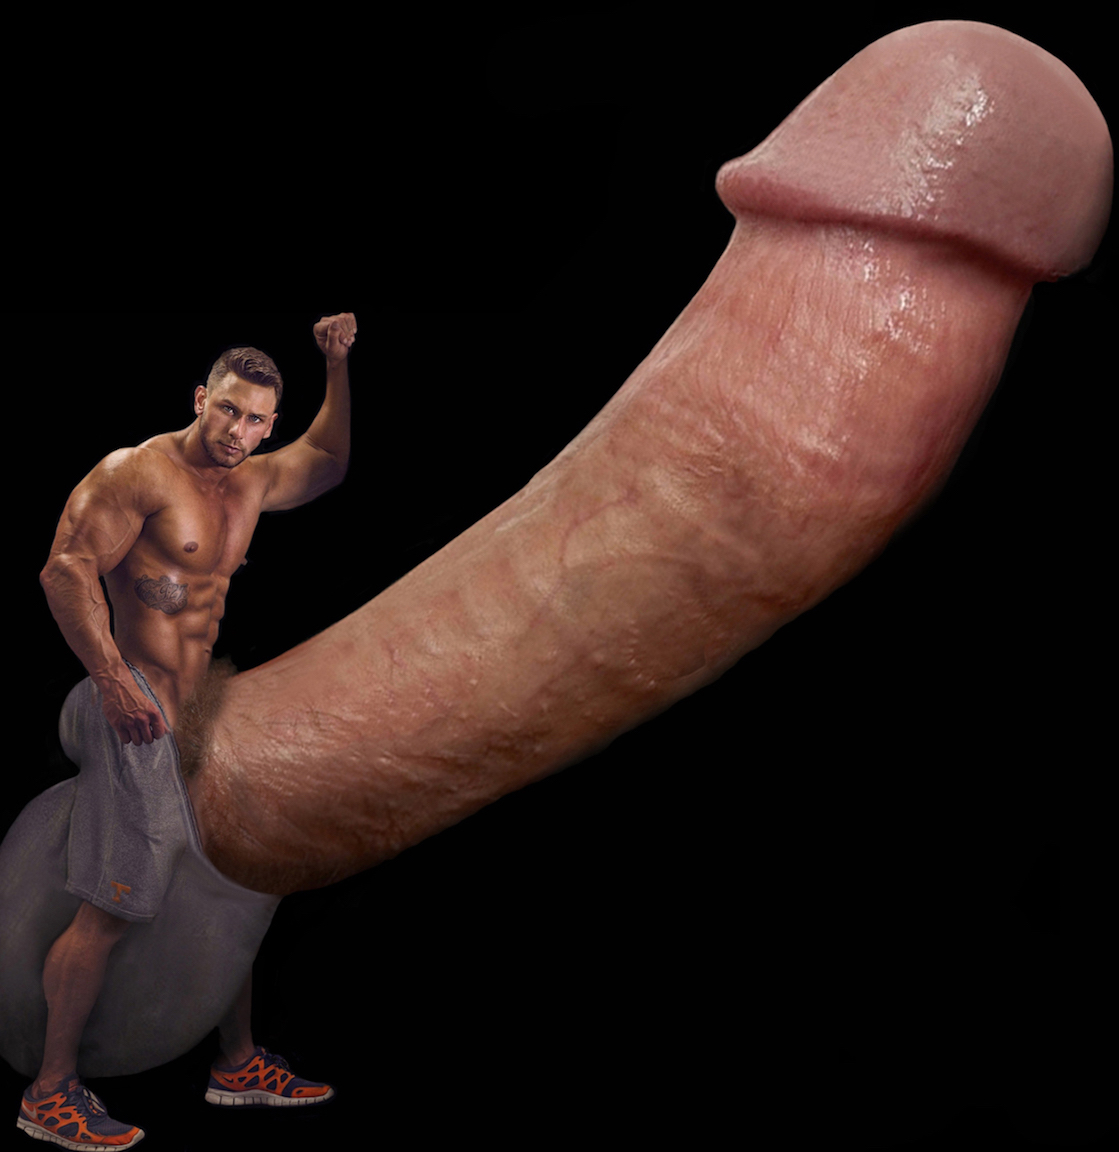 Real Worlds biggest dick nude